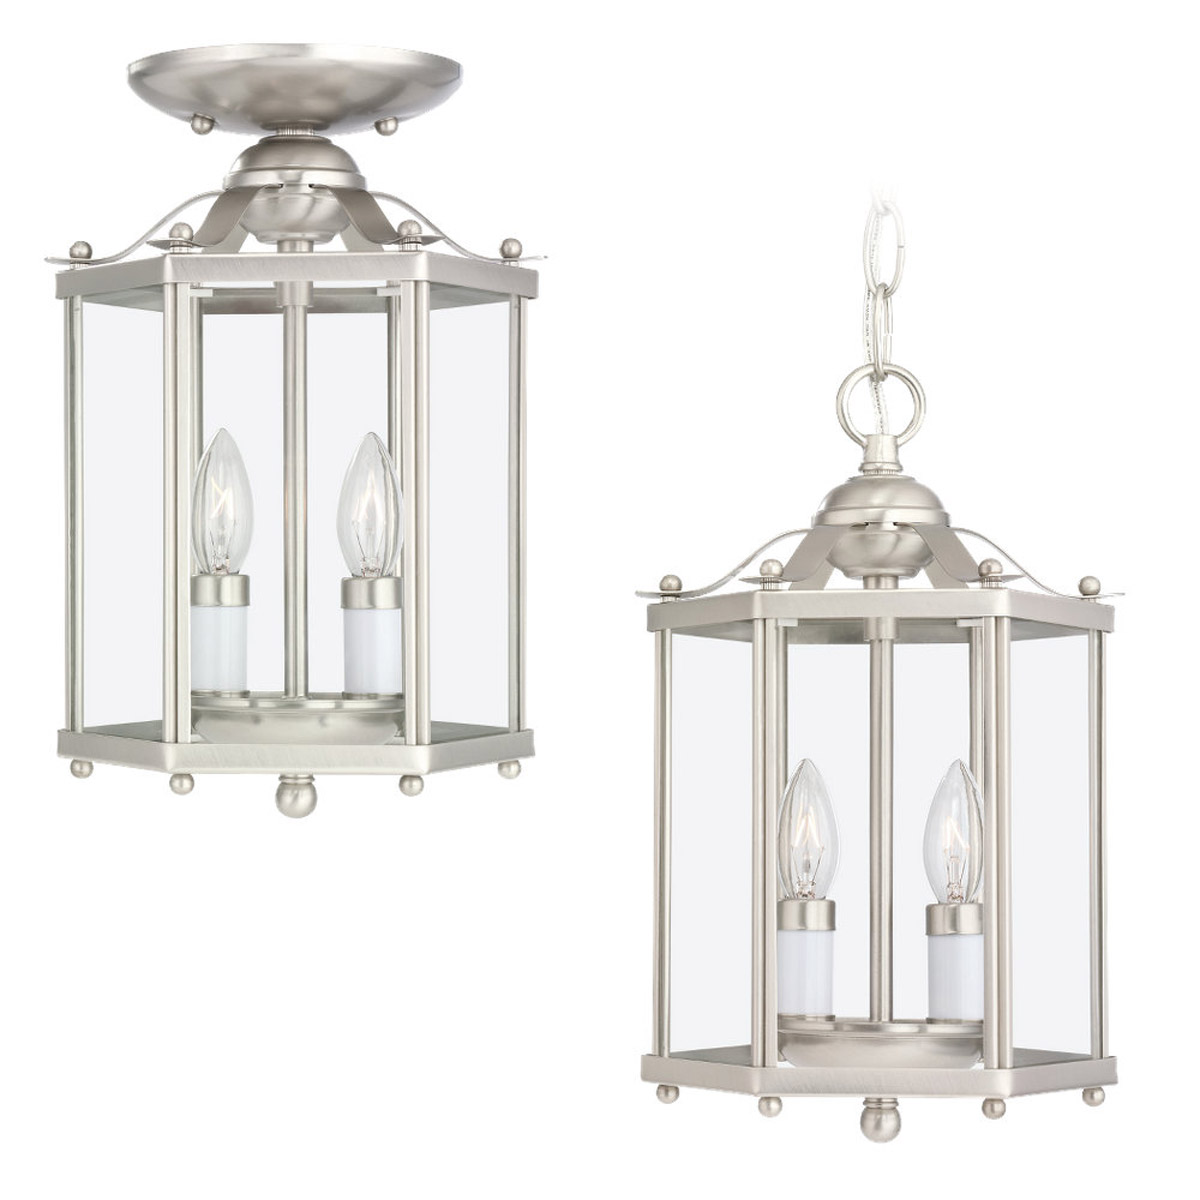 Sea Gull Lighting Bretton 2 Light Pendant Convertible in Brushed Nickel 5232-962